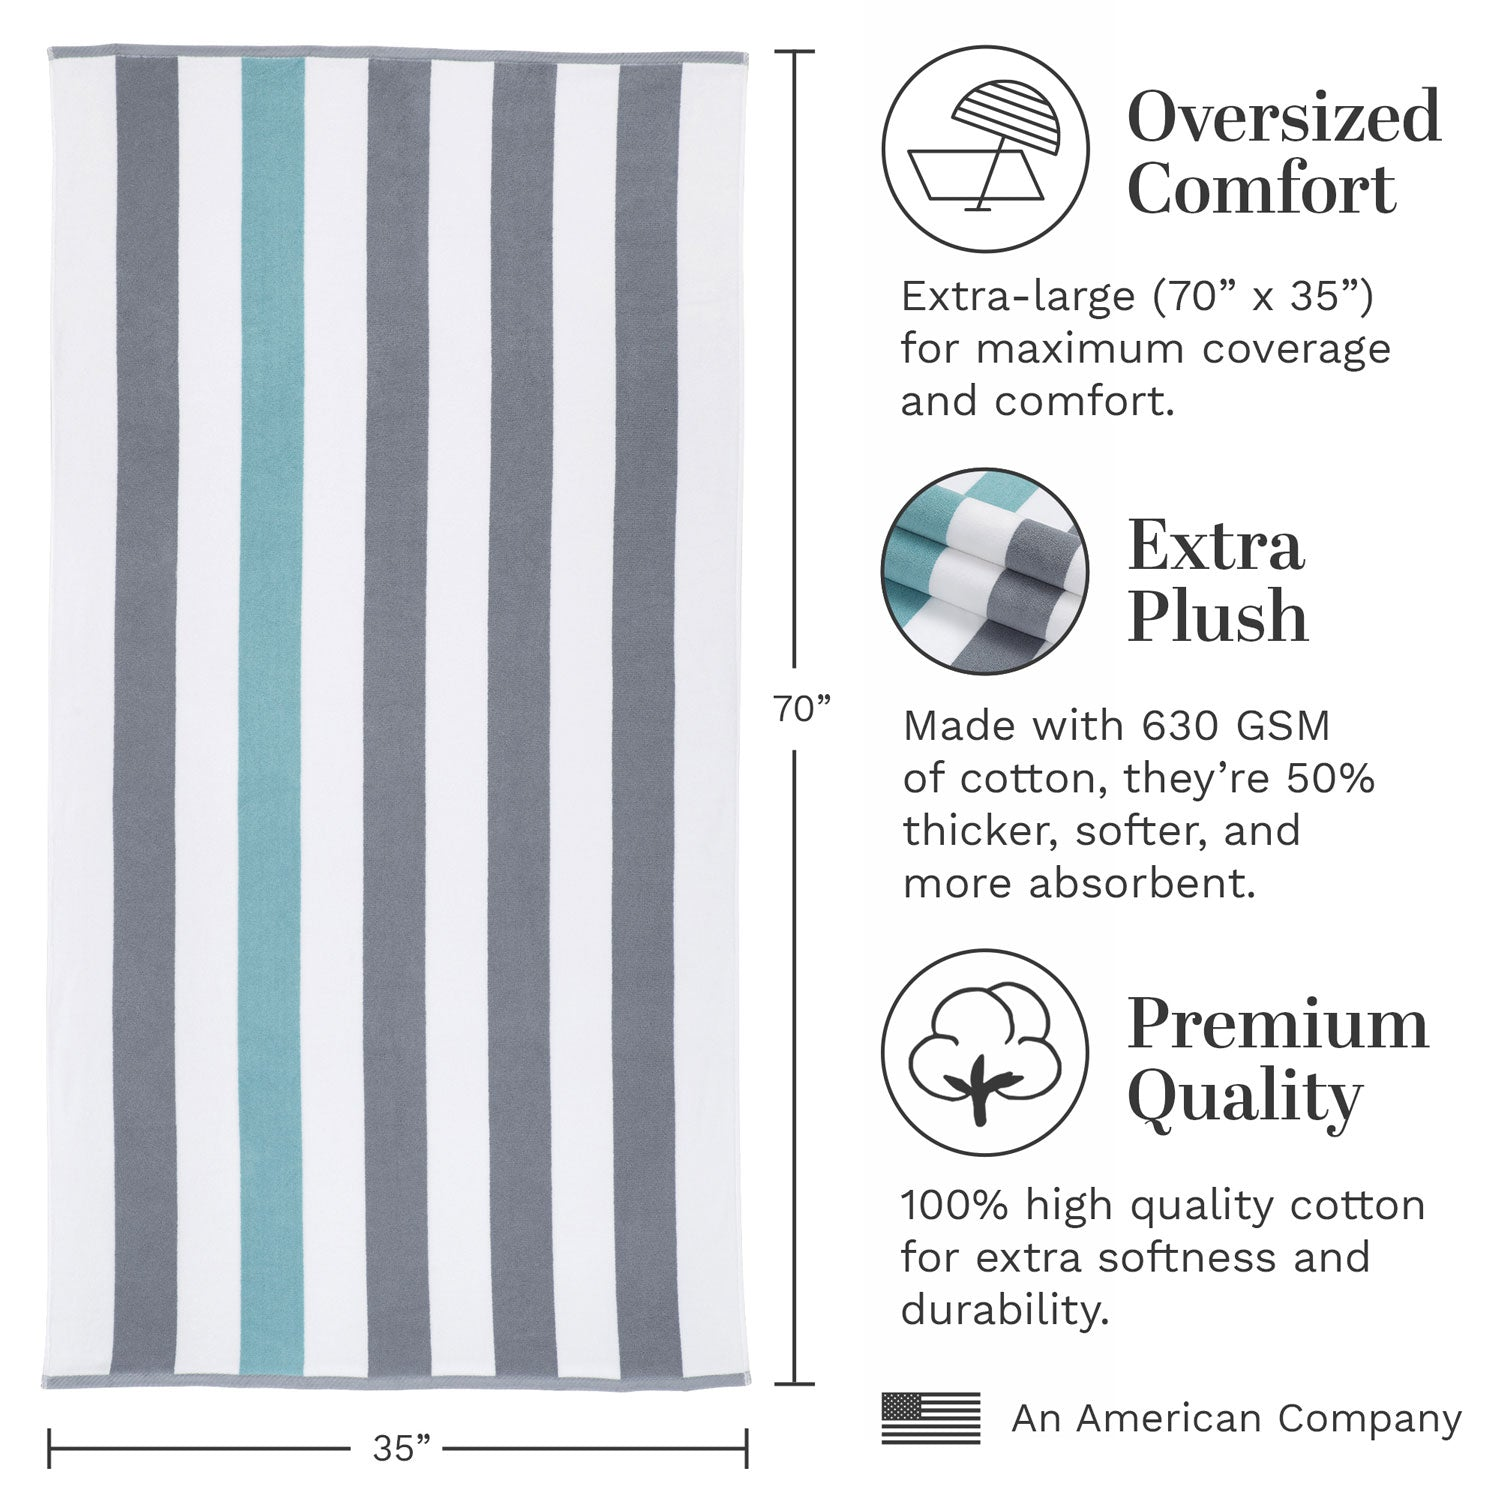 Infographic of our gray and teal blue cabana beach towel highlighting that it's extra plush, premium quality, and oversized.